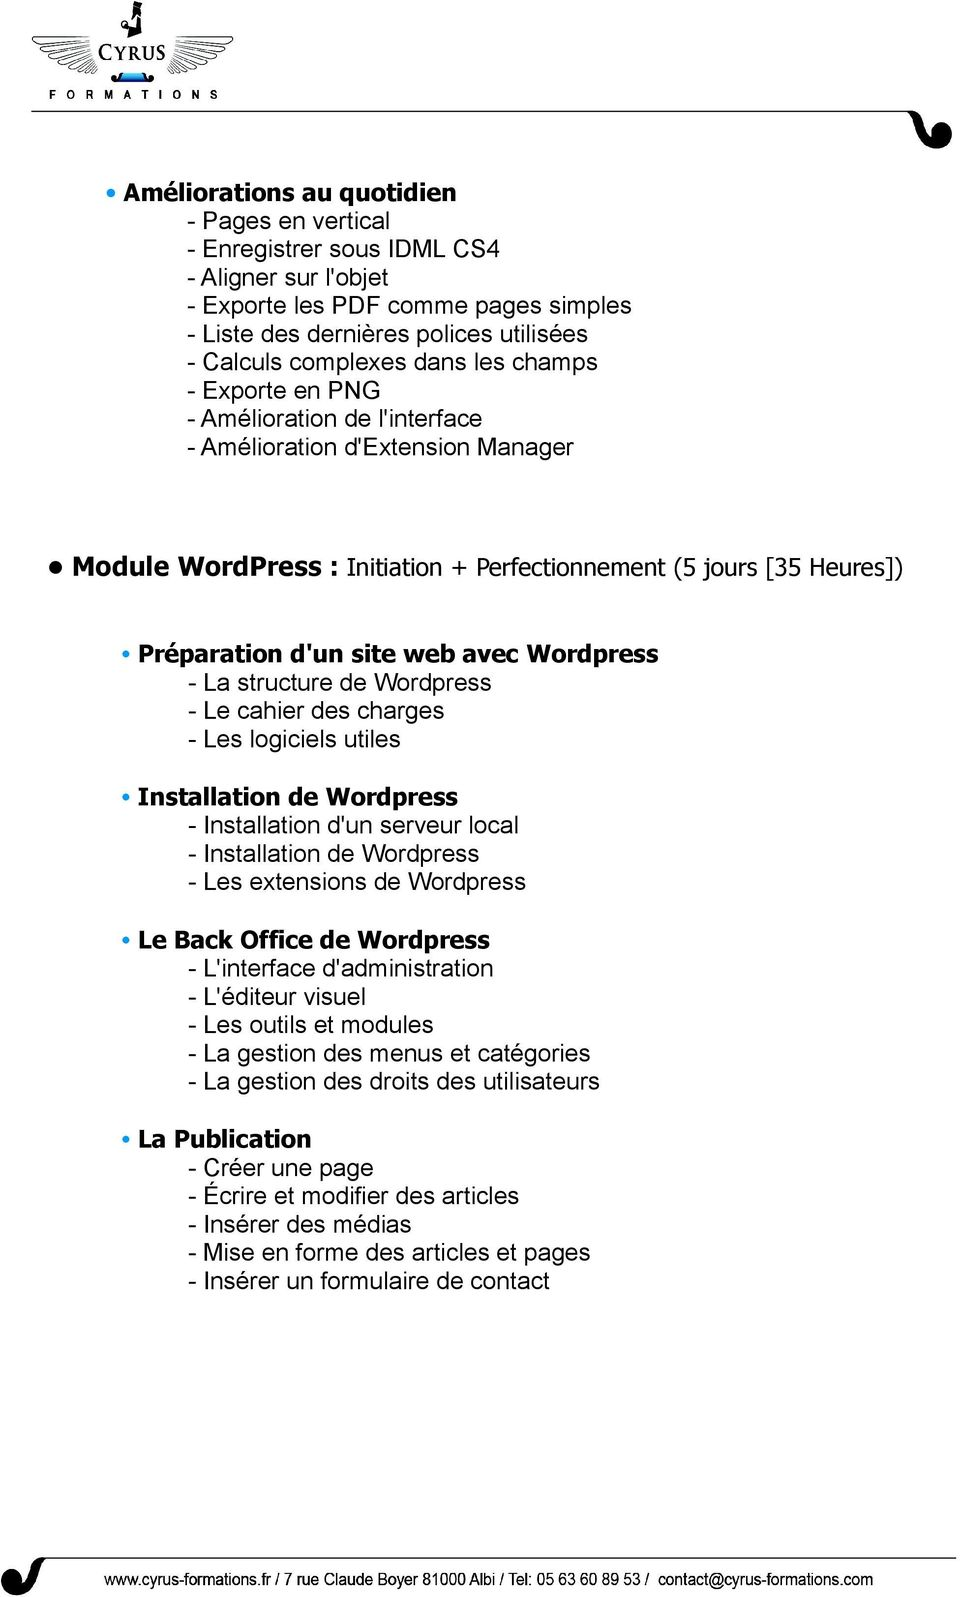 Wordpress - La structure de Wordpress - Le cahier des charges - Les logiciels utiles Installation de Wordpress - Installation d'un serveur local - Installation de Wordpress - Les extensions de